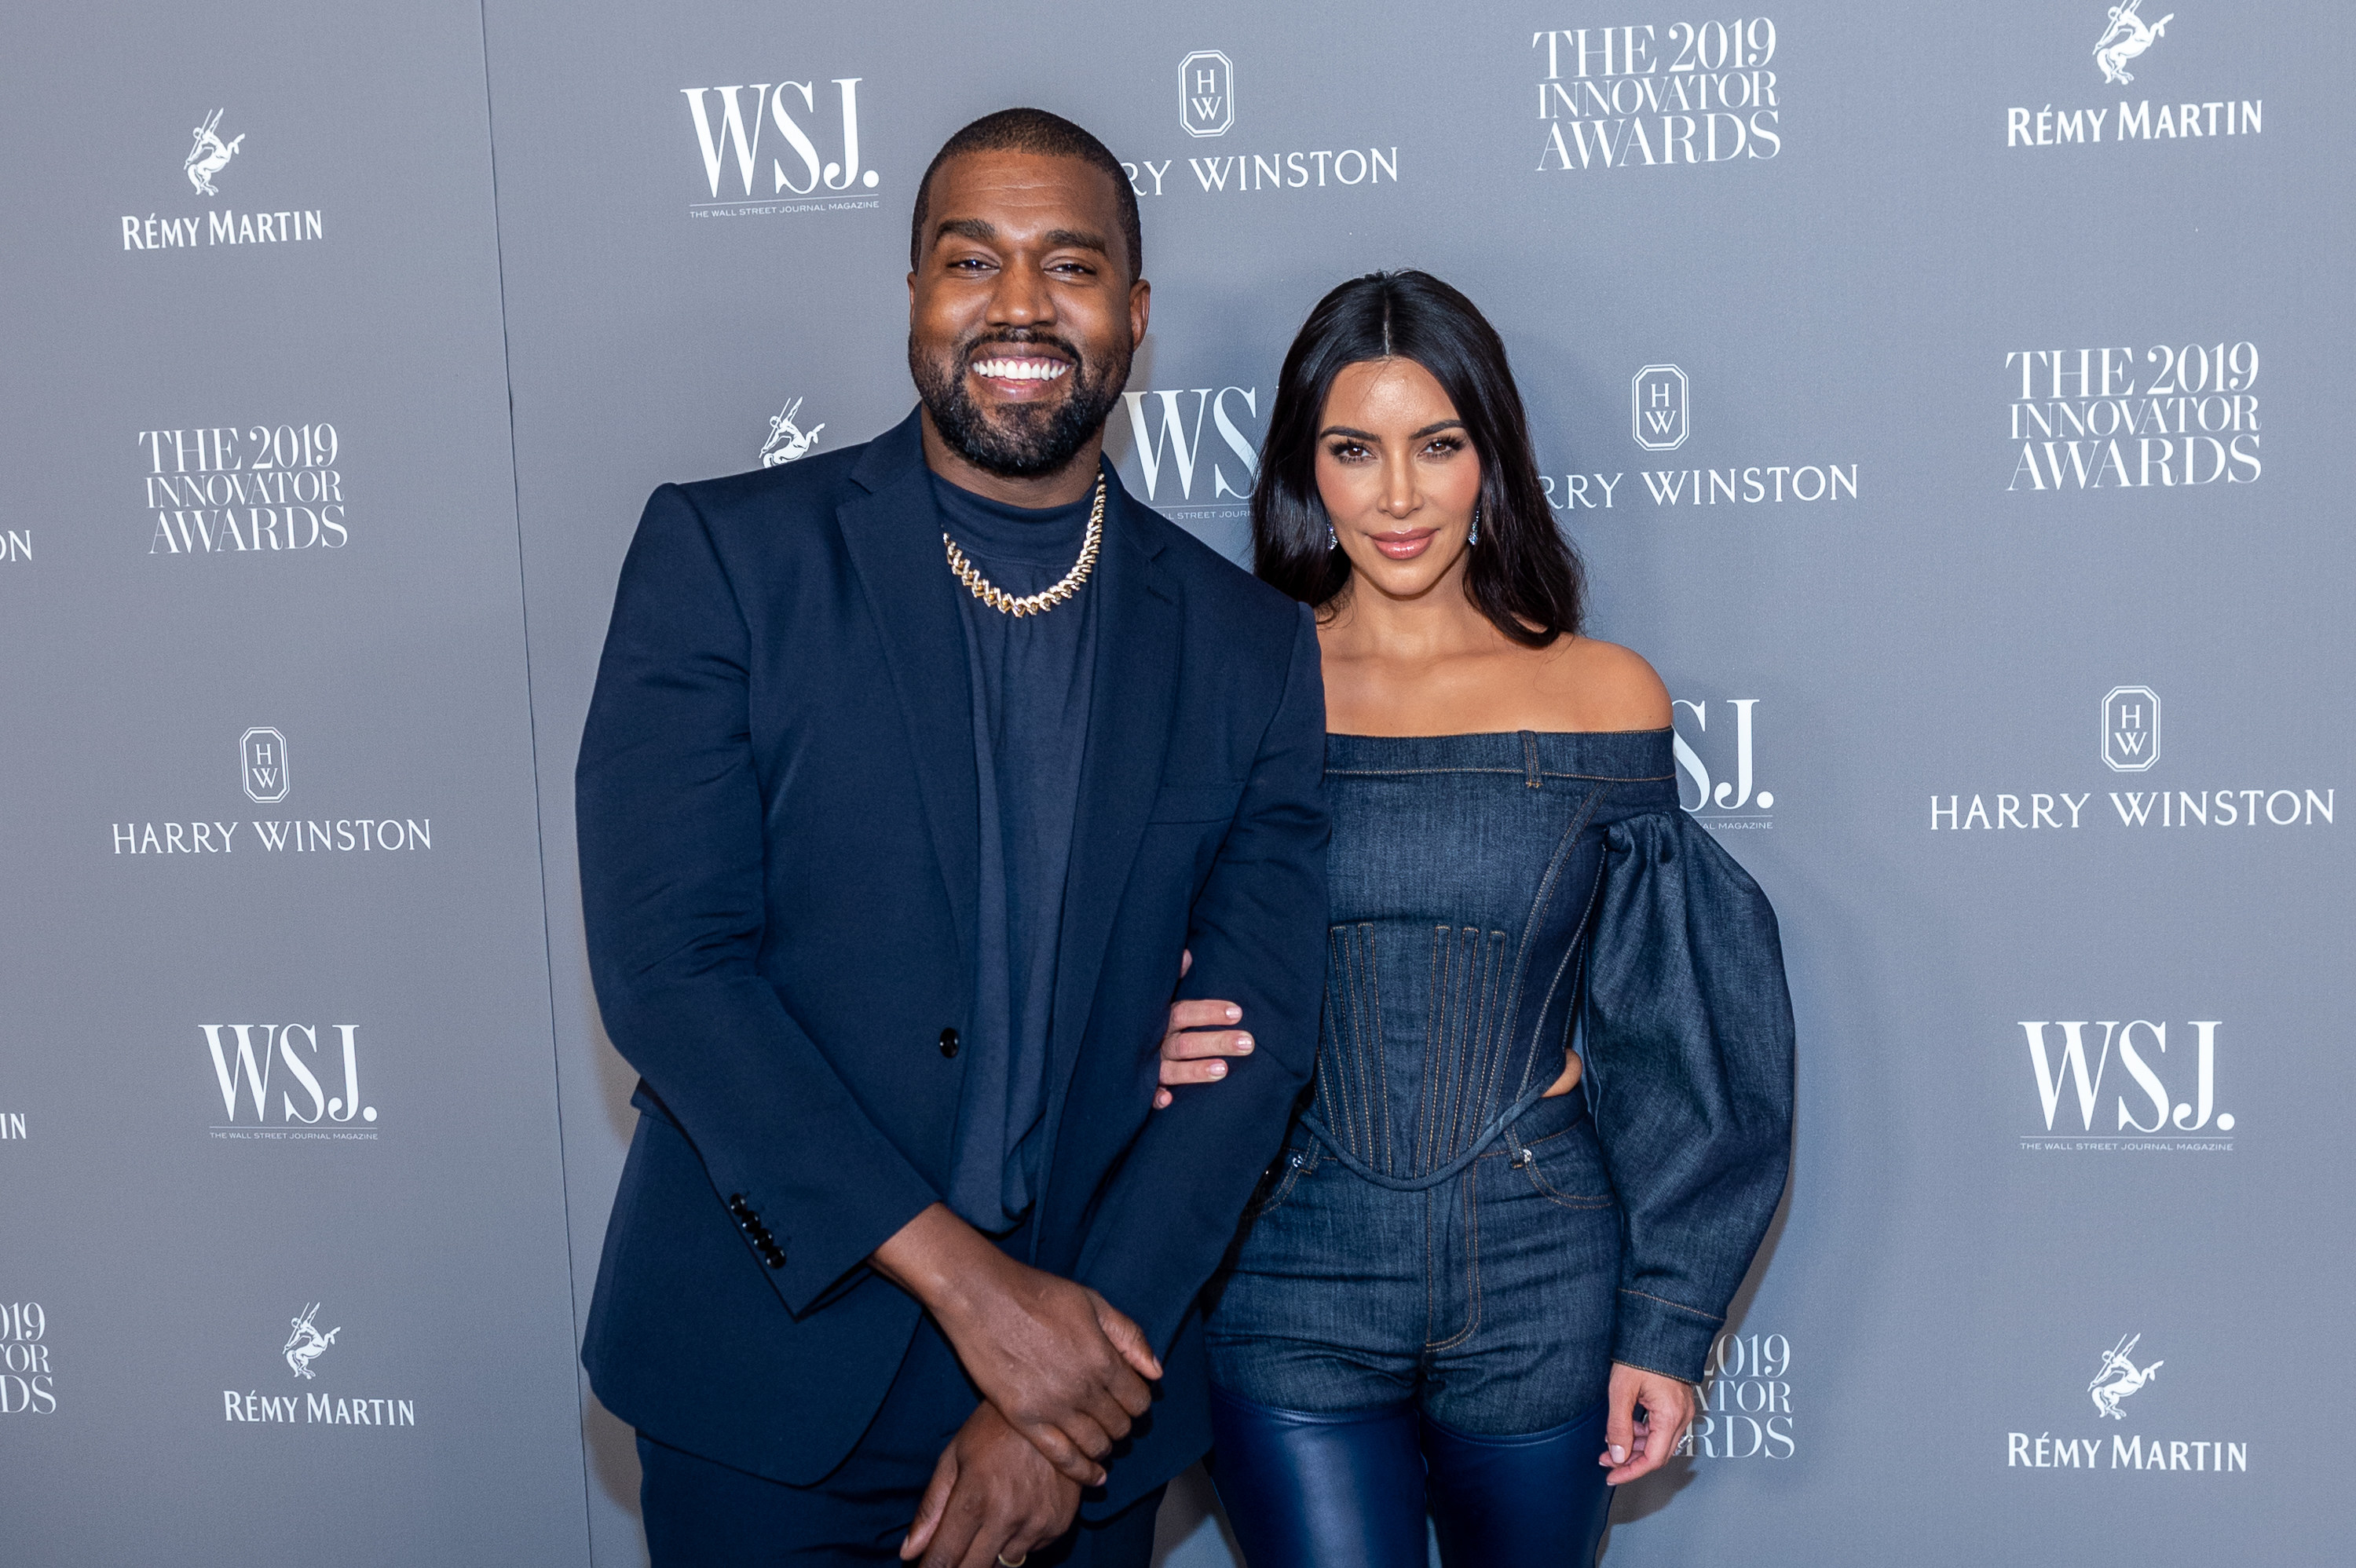 Kanye, in a blue jacket and gold chain and blue shirt, stands next to Kim, in a blue dress